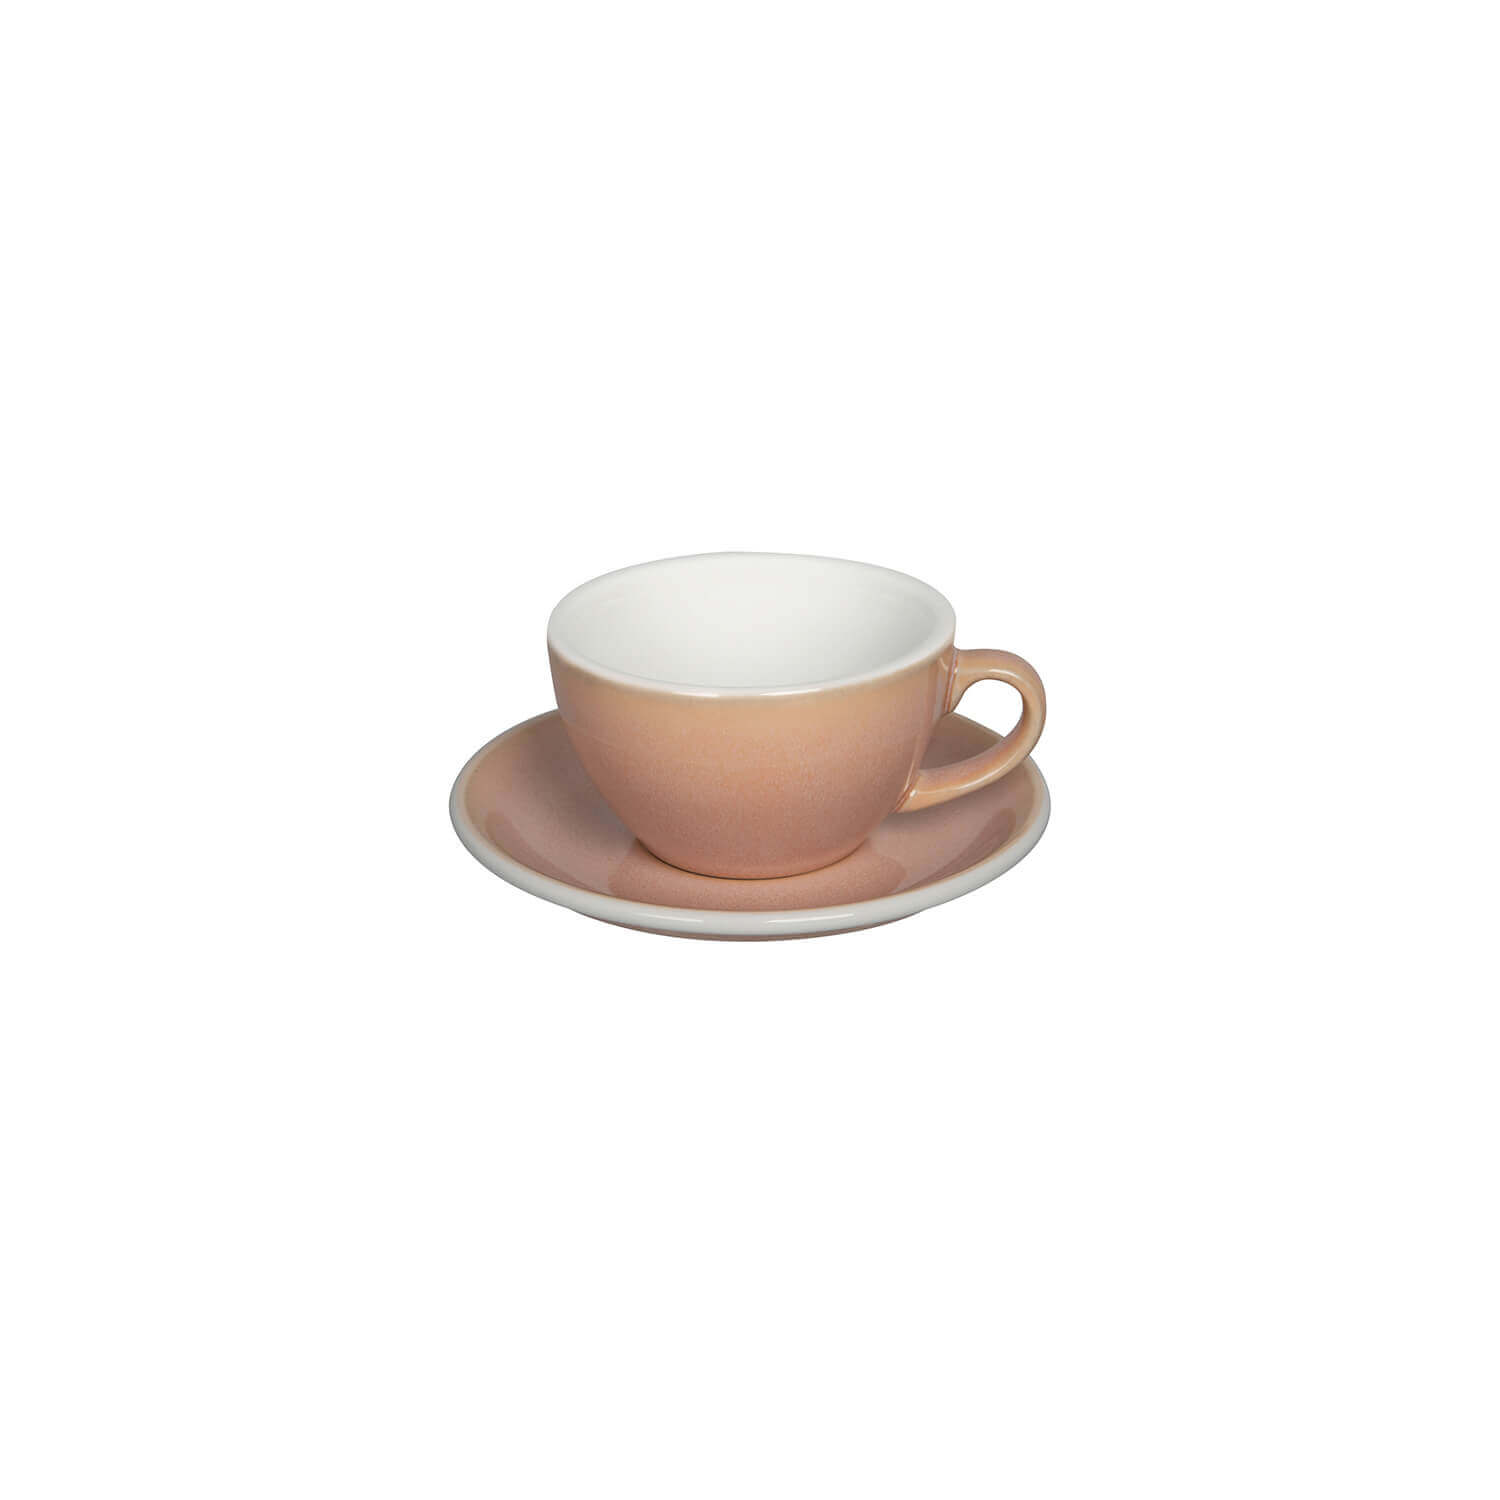 Loveramics - Egg - Cappuccino Set - Rose